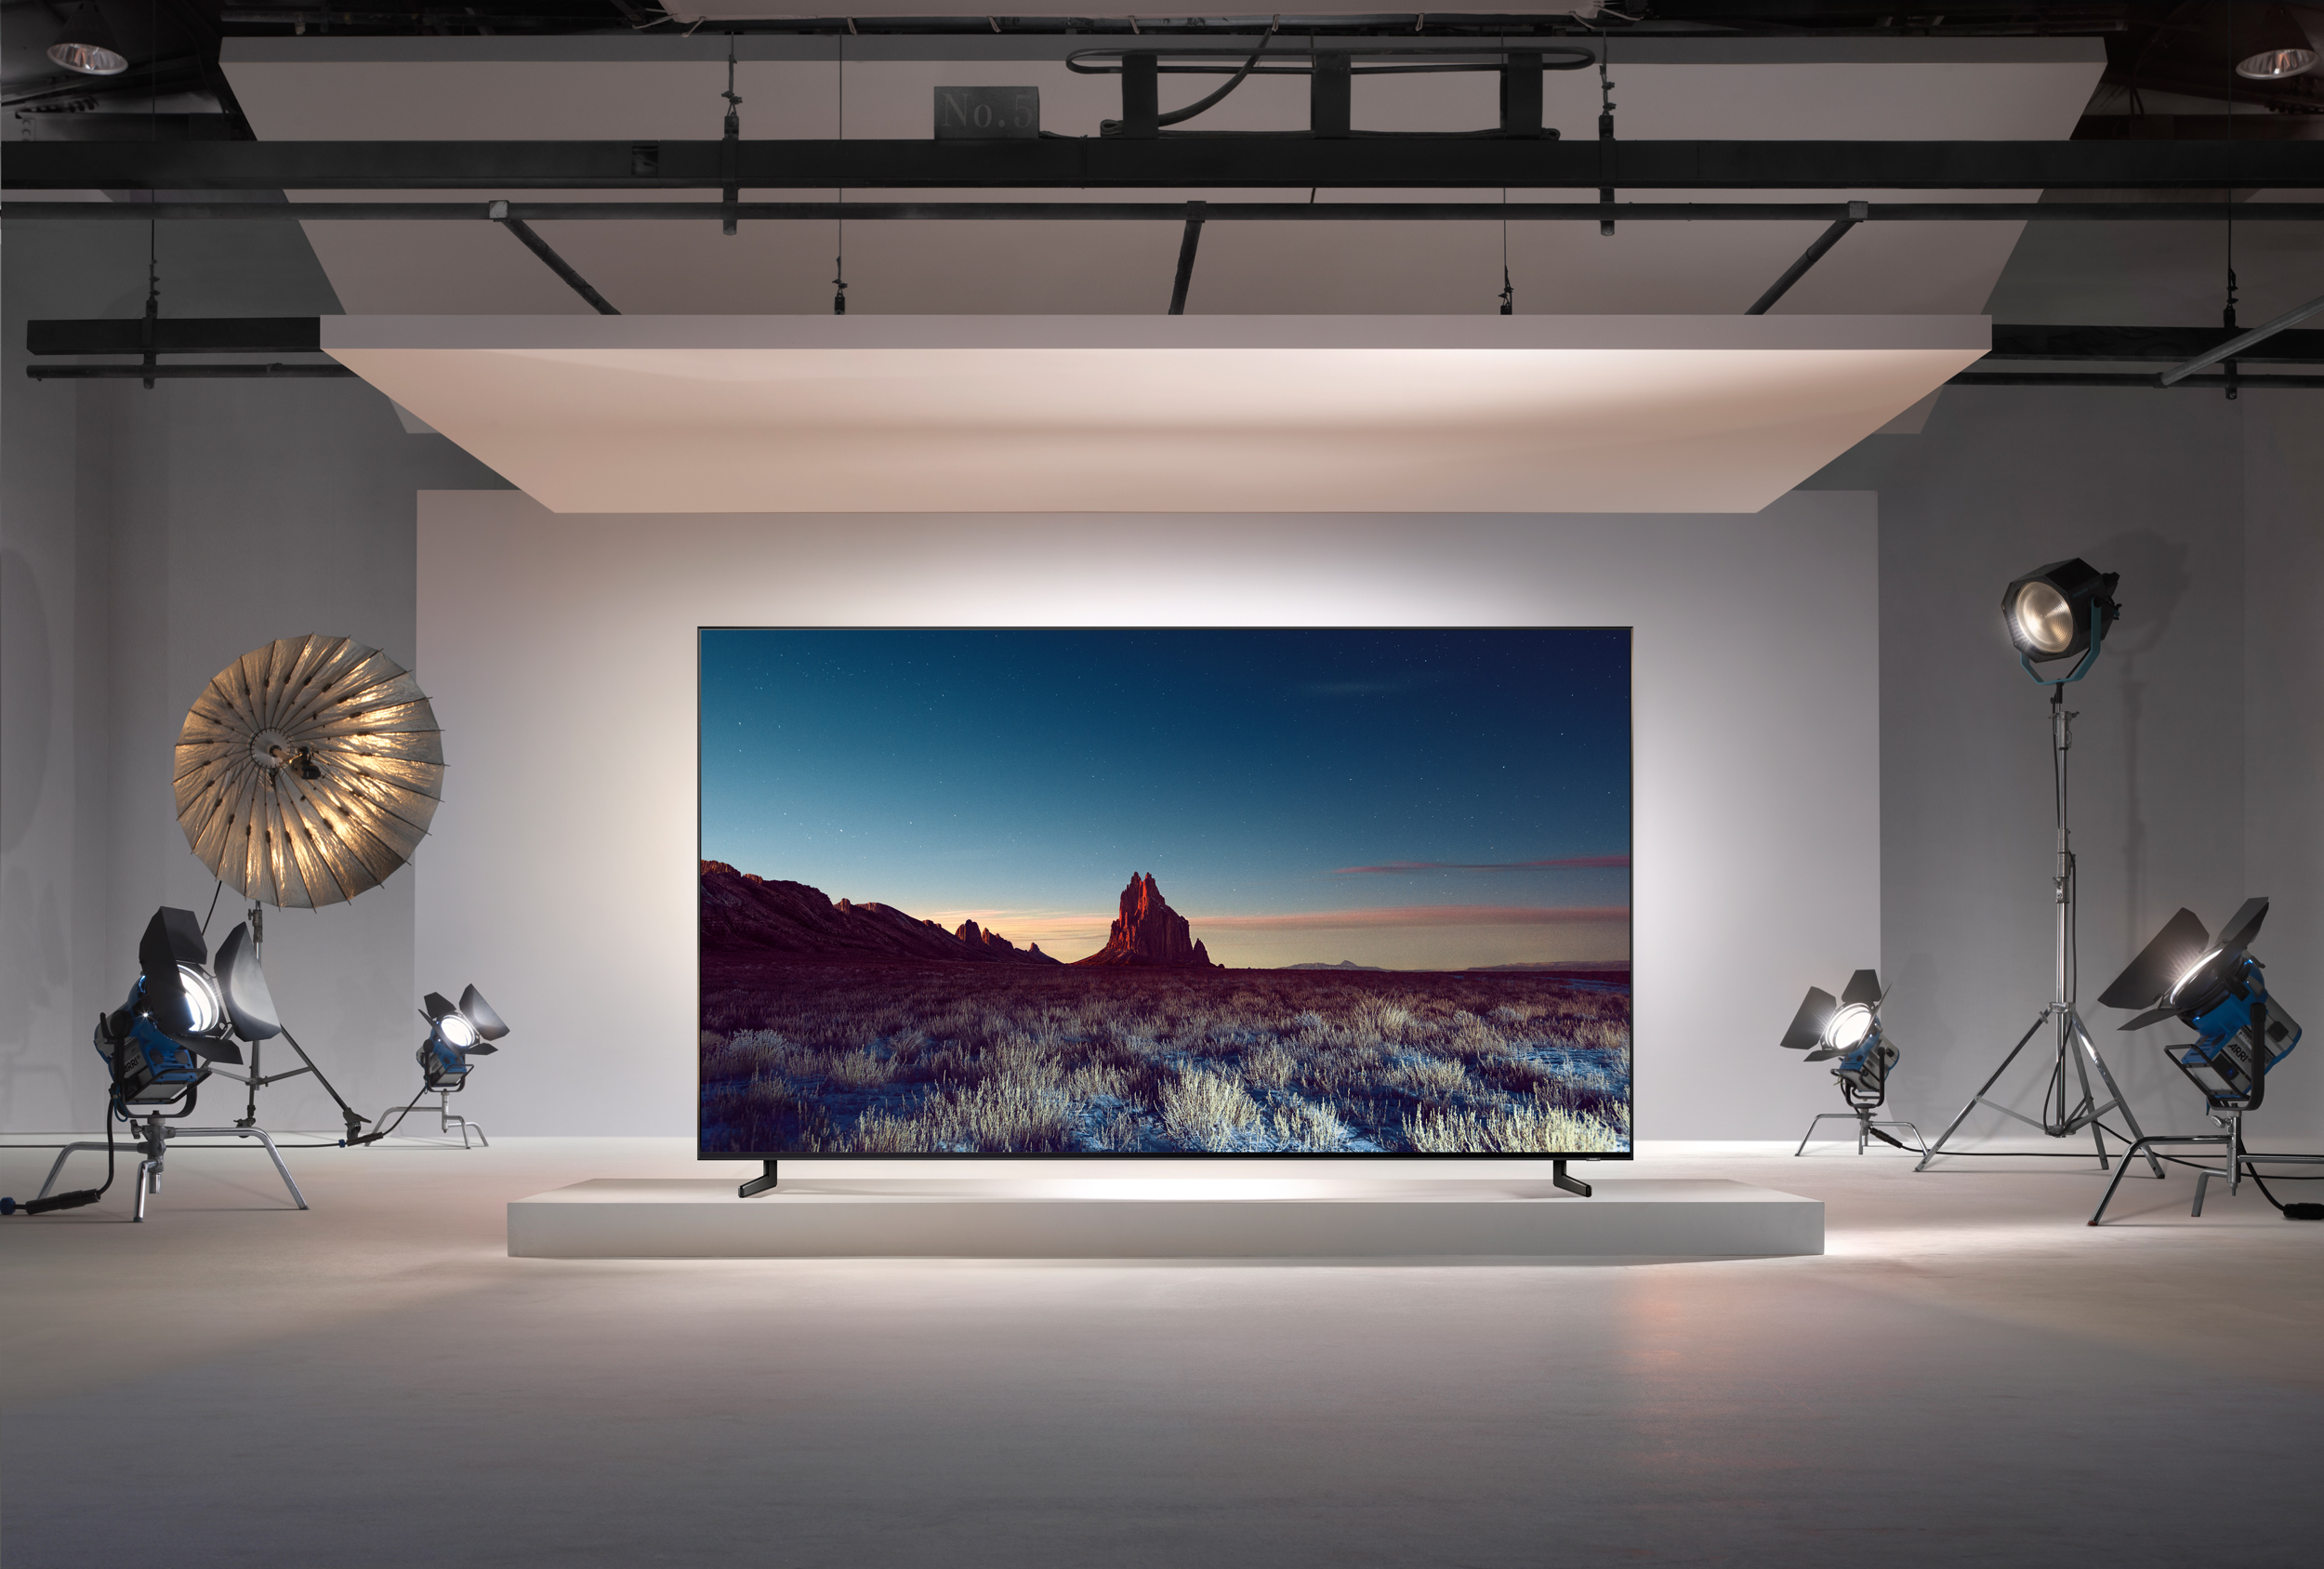 ifa 2018 samsung ebnet mit qled 8k tv den weg in eine neue ra seiner bildqualit t samsung. Black Bedroom Furniture Sets. Home Design Ideas